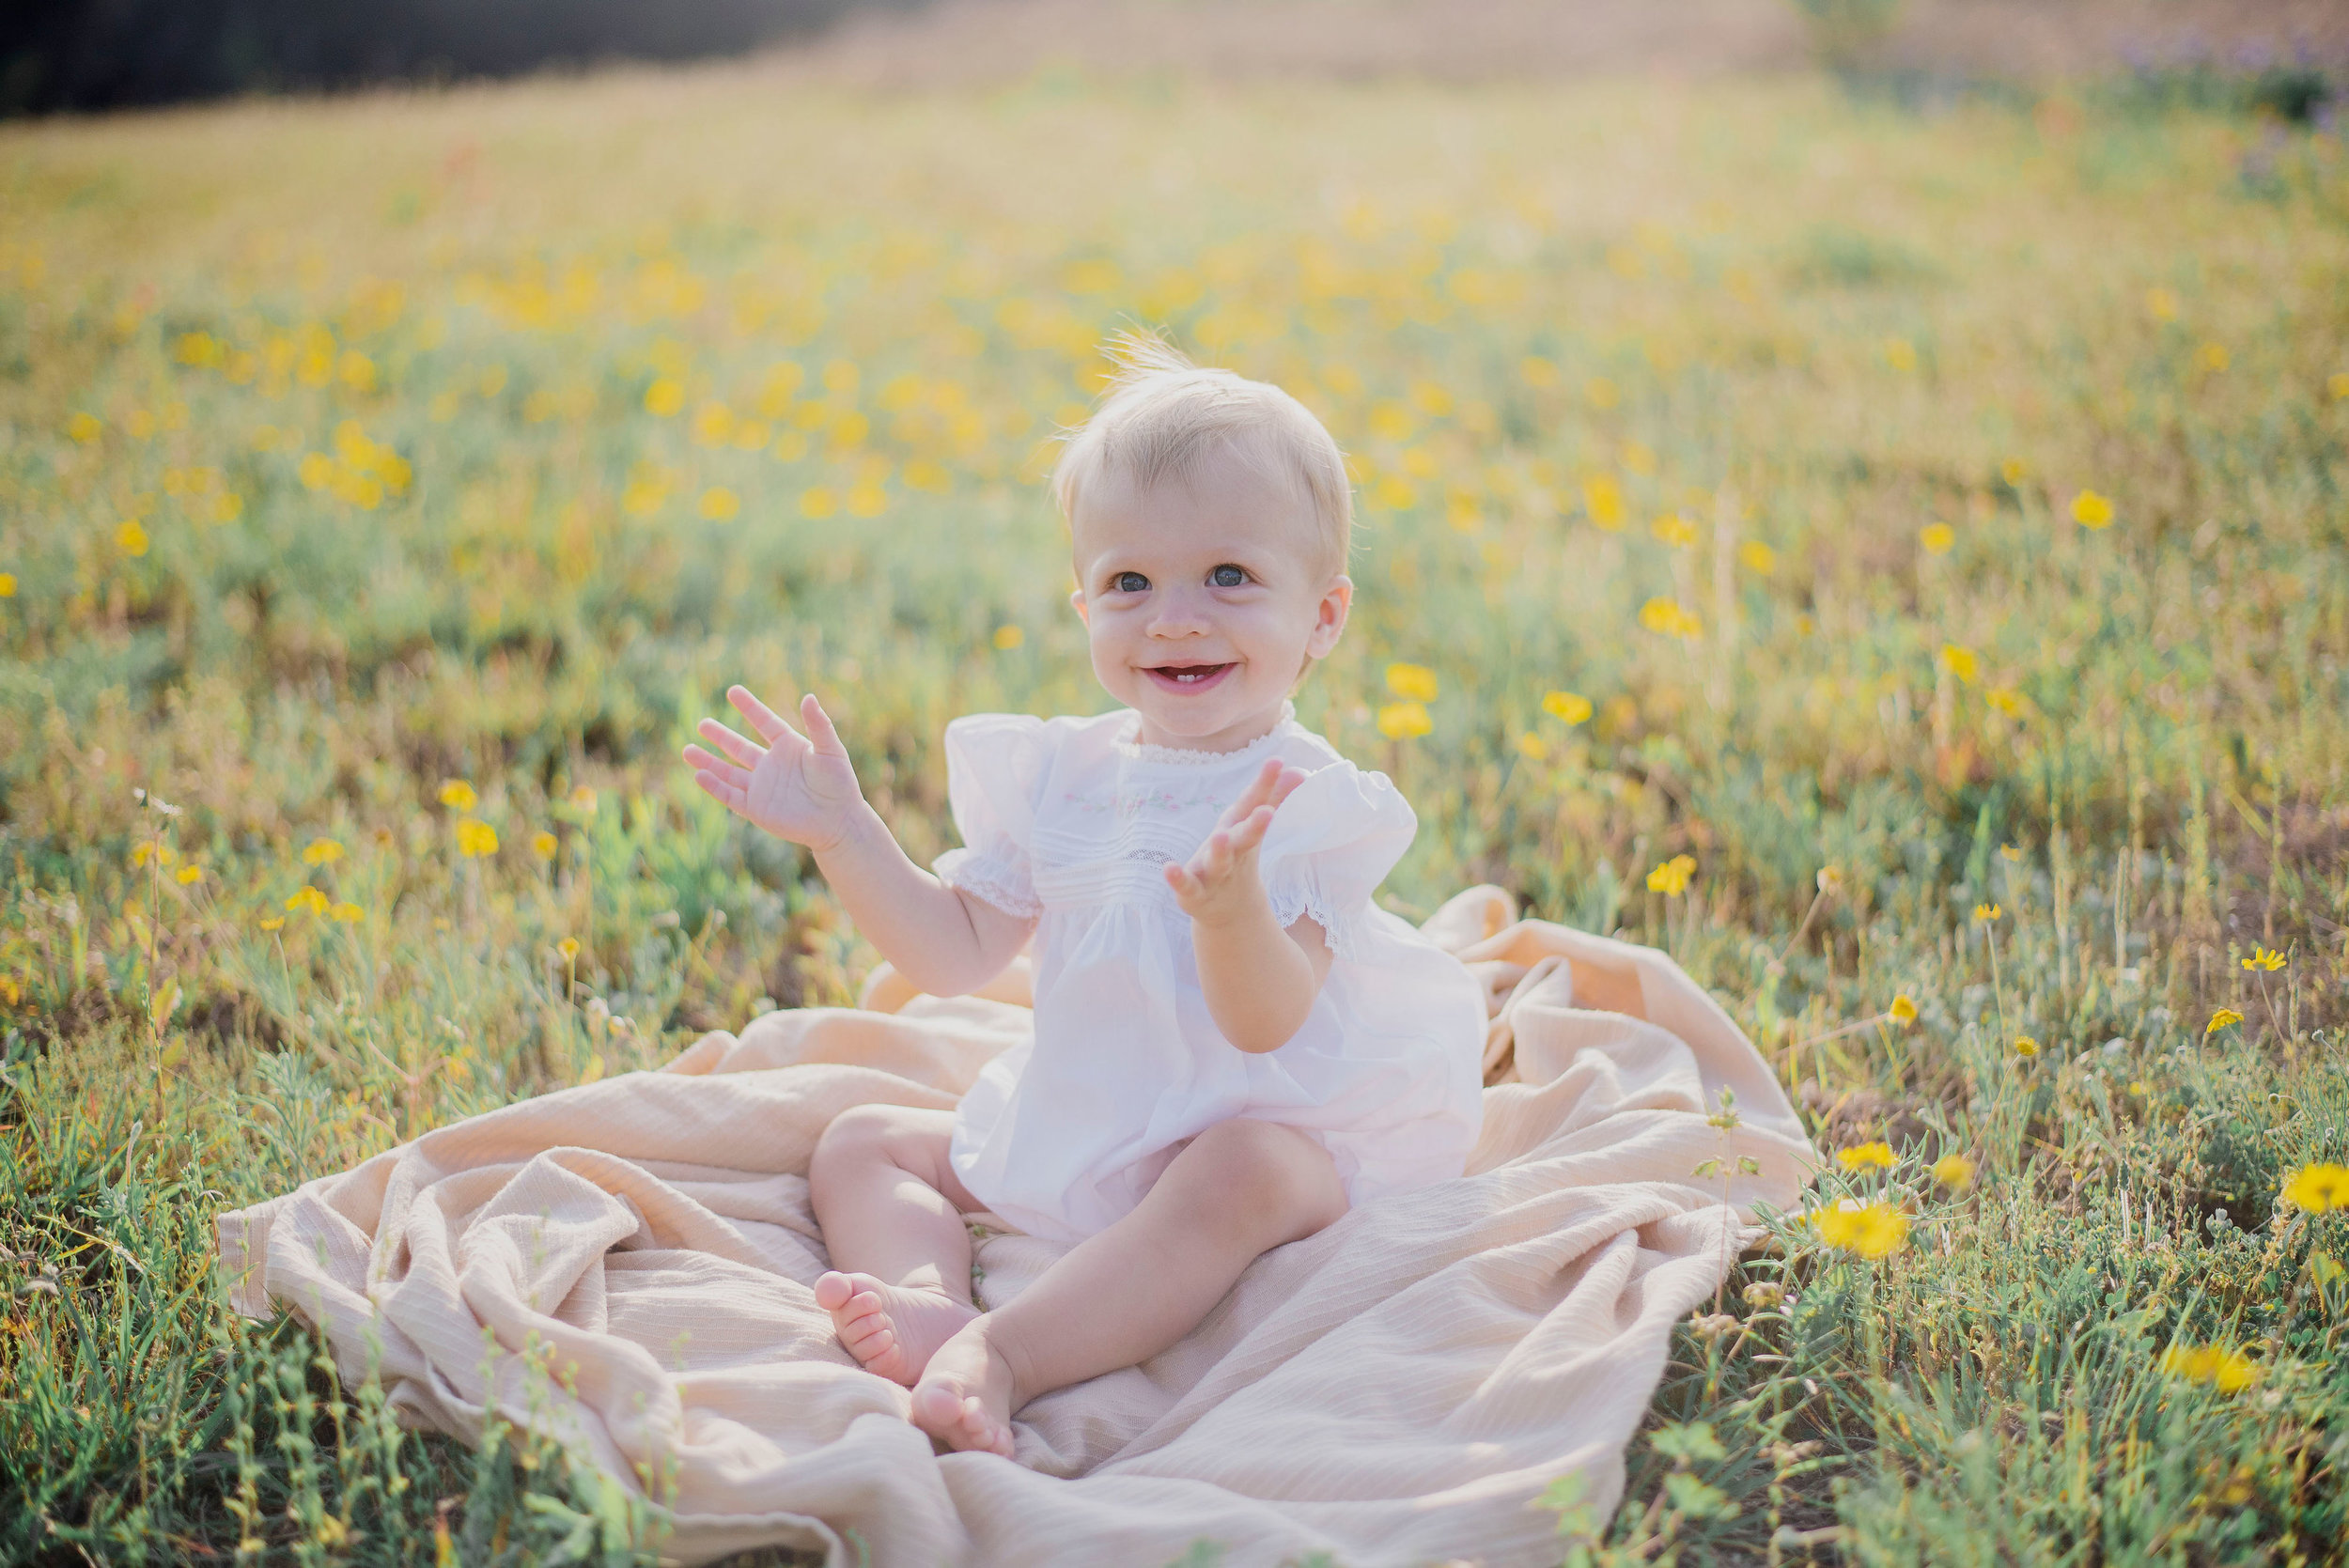 Austin Portrait Photographer First Birthday Session Texas Wildflowers Bluebonnets035.jpg